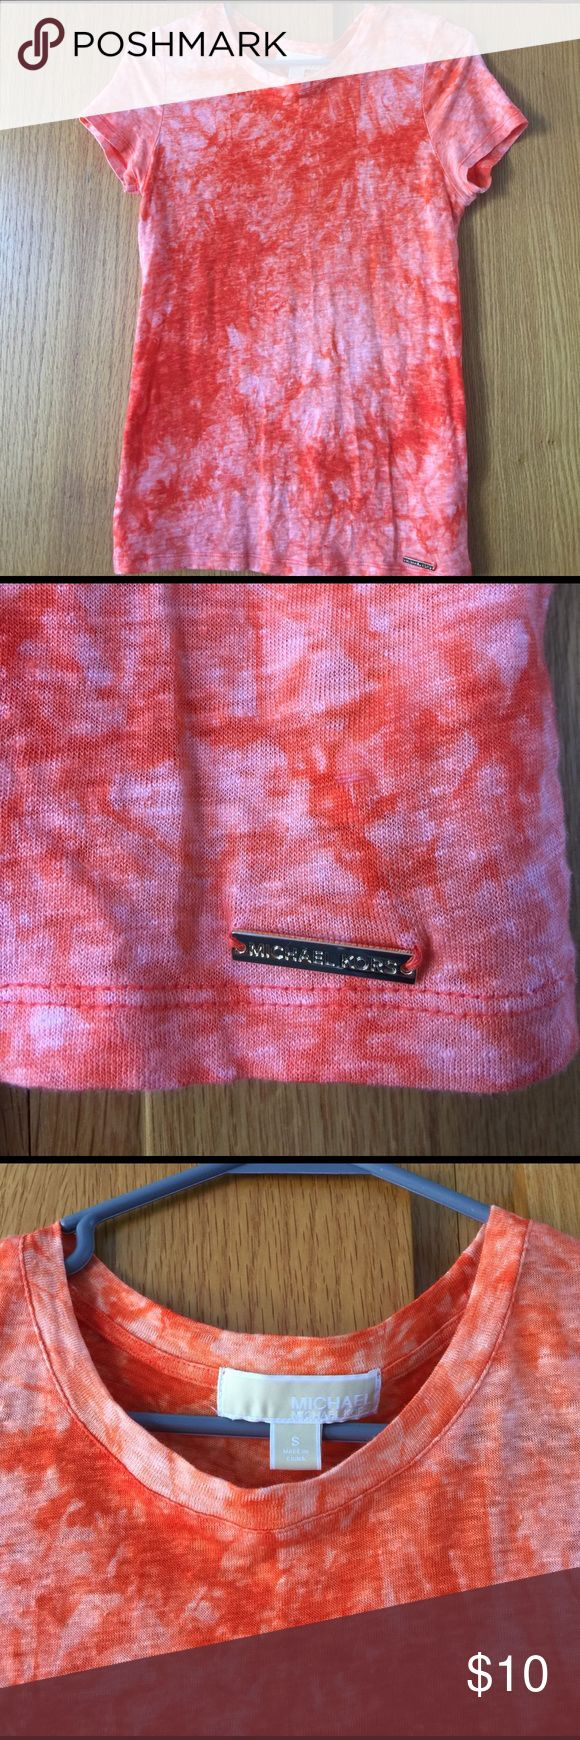 Michael Kors orange tie-dye T-shirt, small Michael Kors orange tie-dye short sleeve T-shirt. Has 'Michael kors' embossed gold bar on lower left hemline. 100% linen. New, without tags. Size small. Nonsmoking home. MICHAEL Michael Kors Tops Tees - Short Sleeve